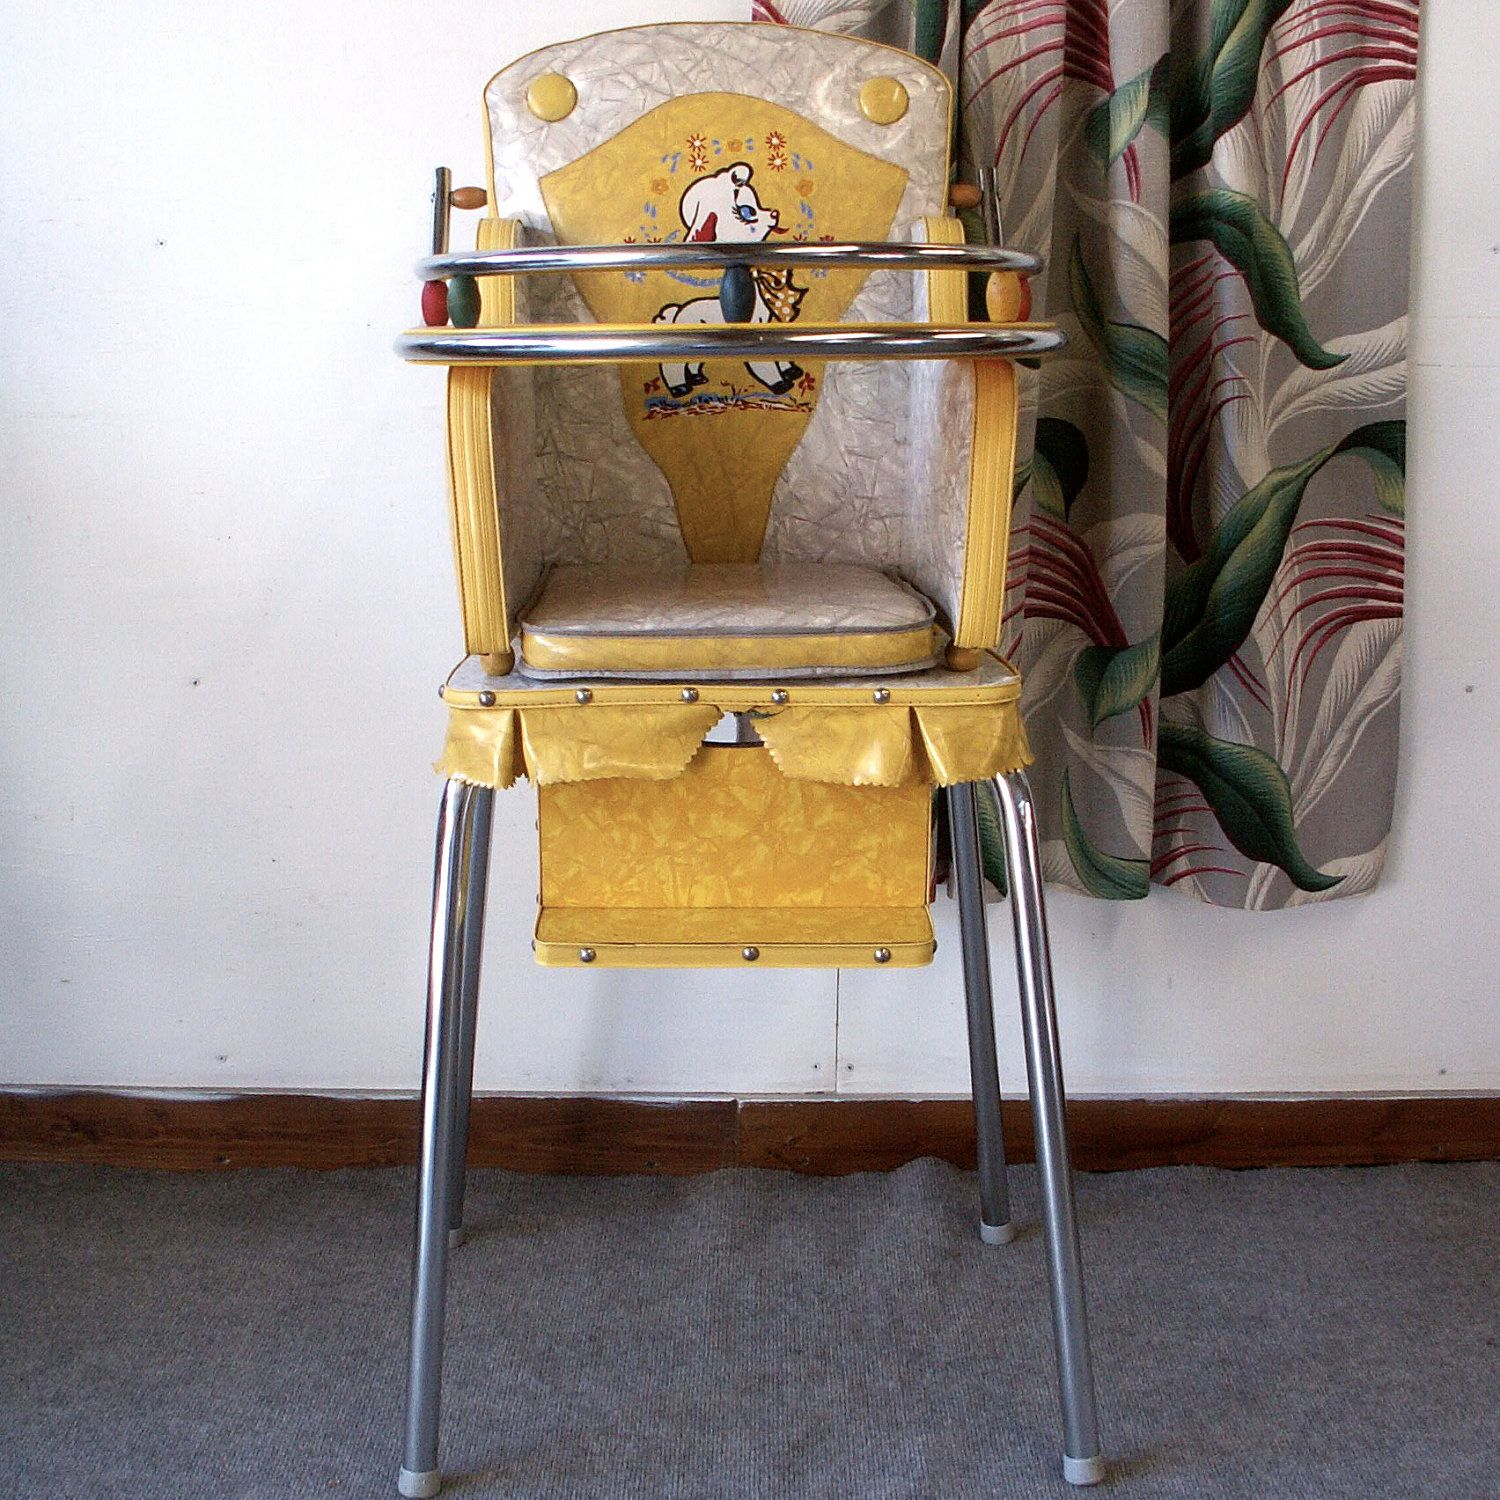 Seggioloni Roba Vintage Baby High Chair Vintage High Chair Vintage Vintage